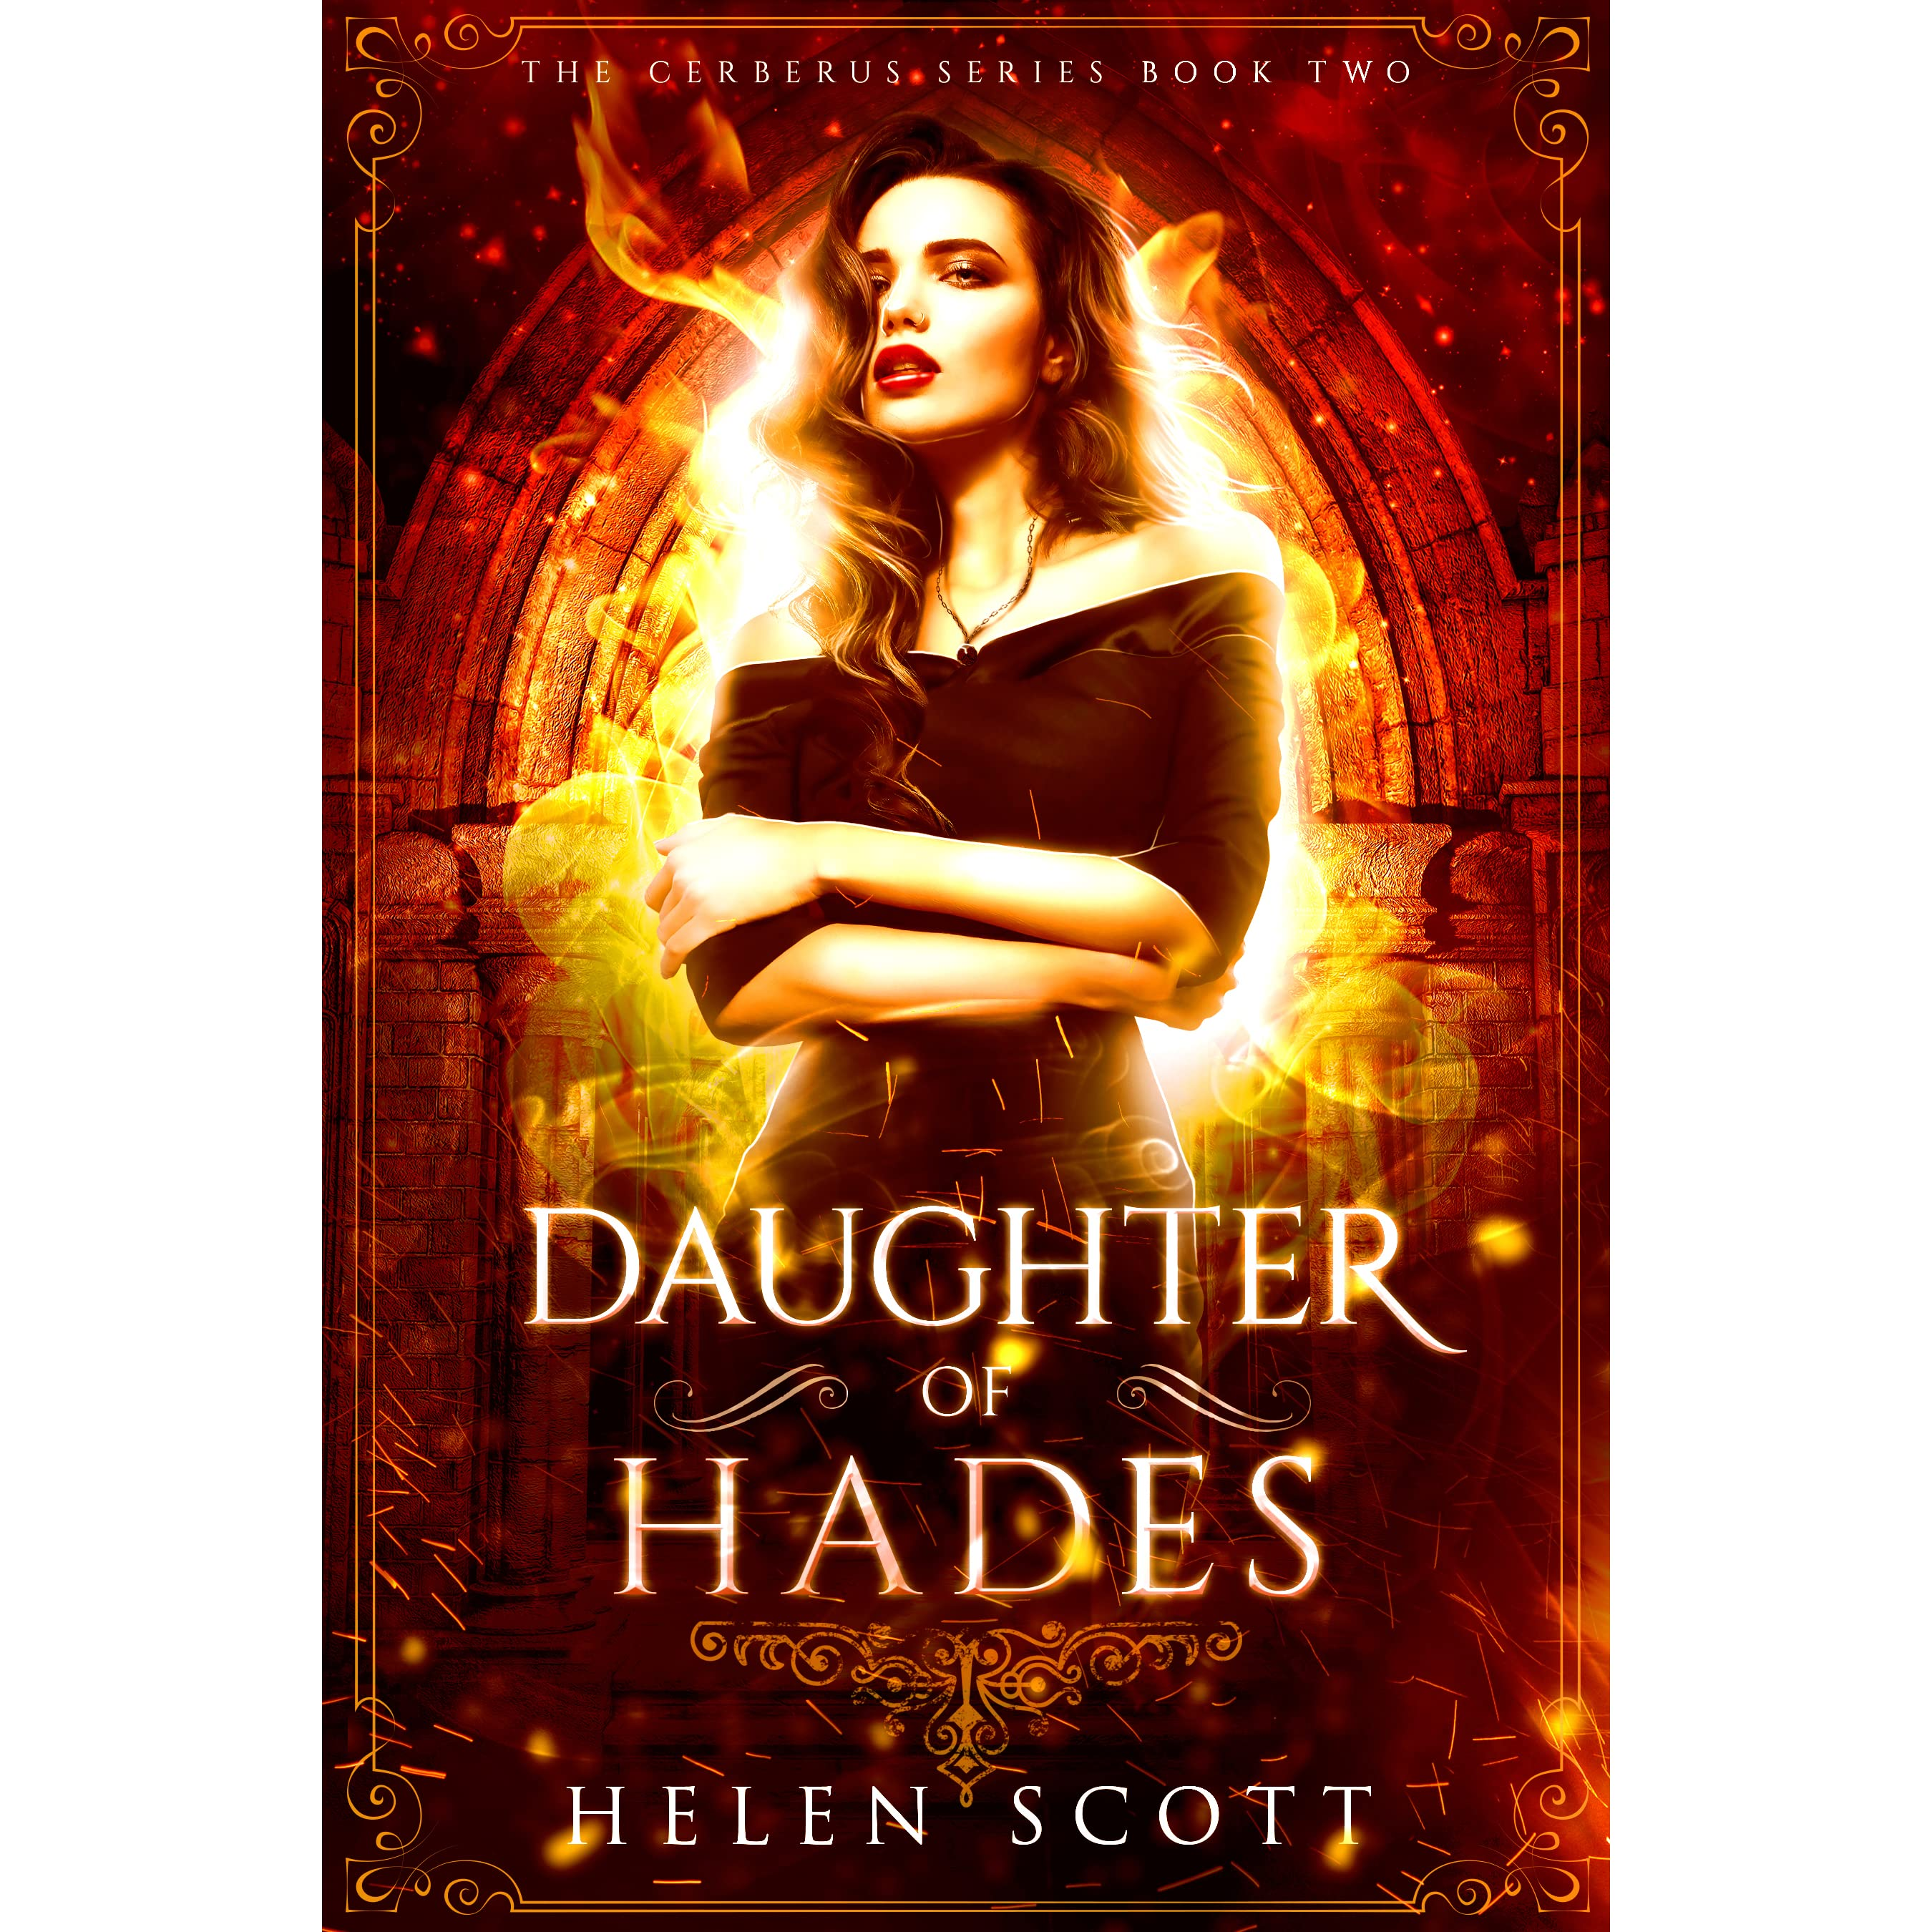 Como Descargar Libros En Goodreads Daughter Of Hades Cerberus 2 By Helen Scott